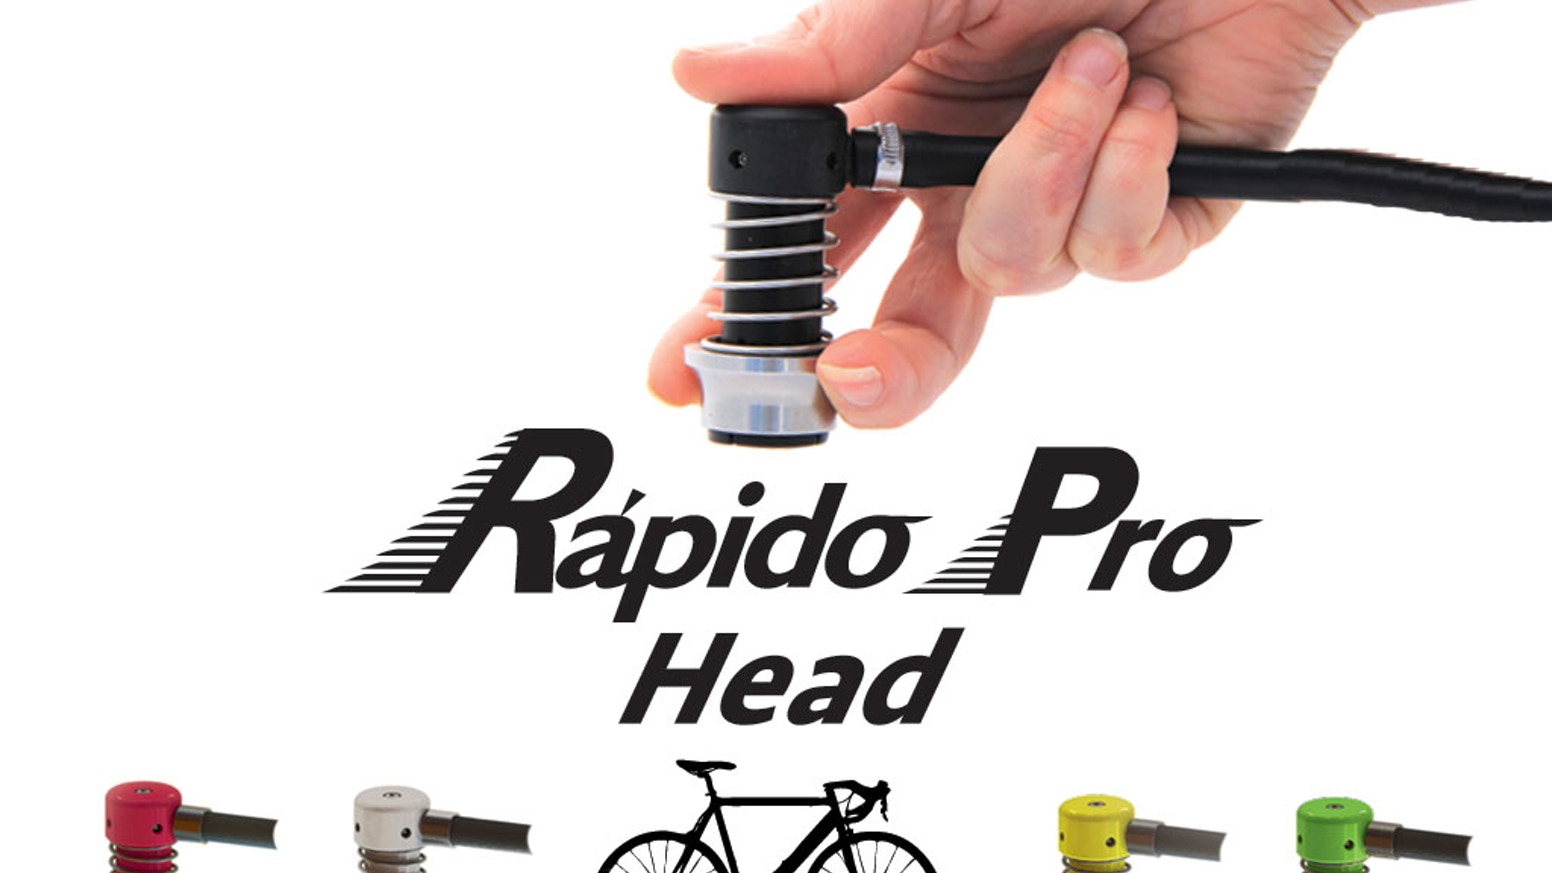 First super easy bicycle pump head that seamlessly engages with Schrader or Presta tire valves, making airing up your tires carefree.